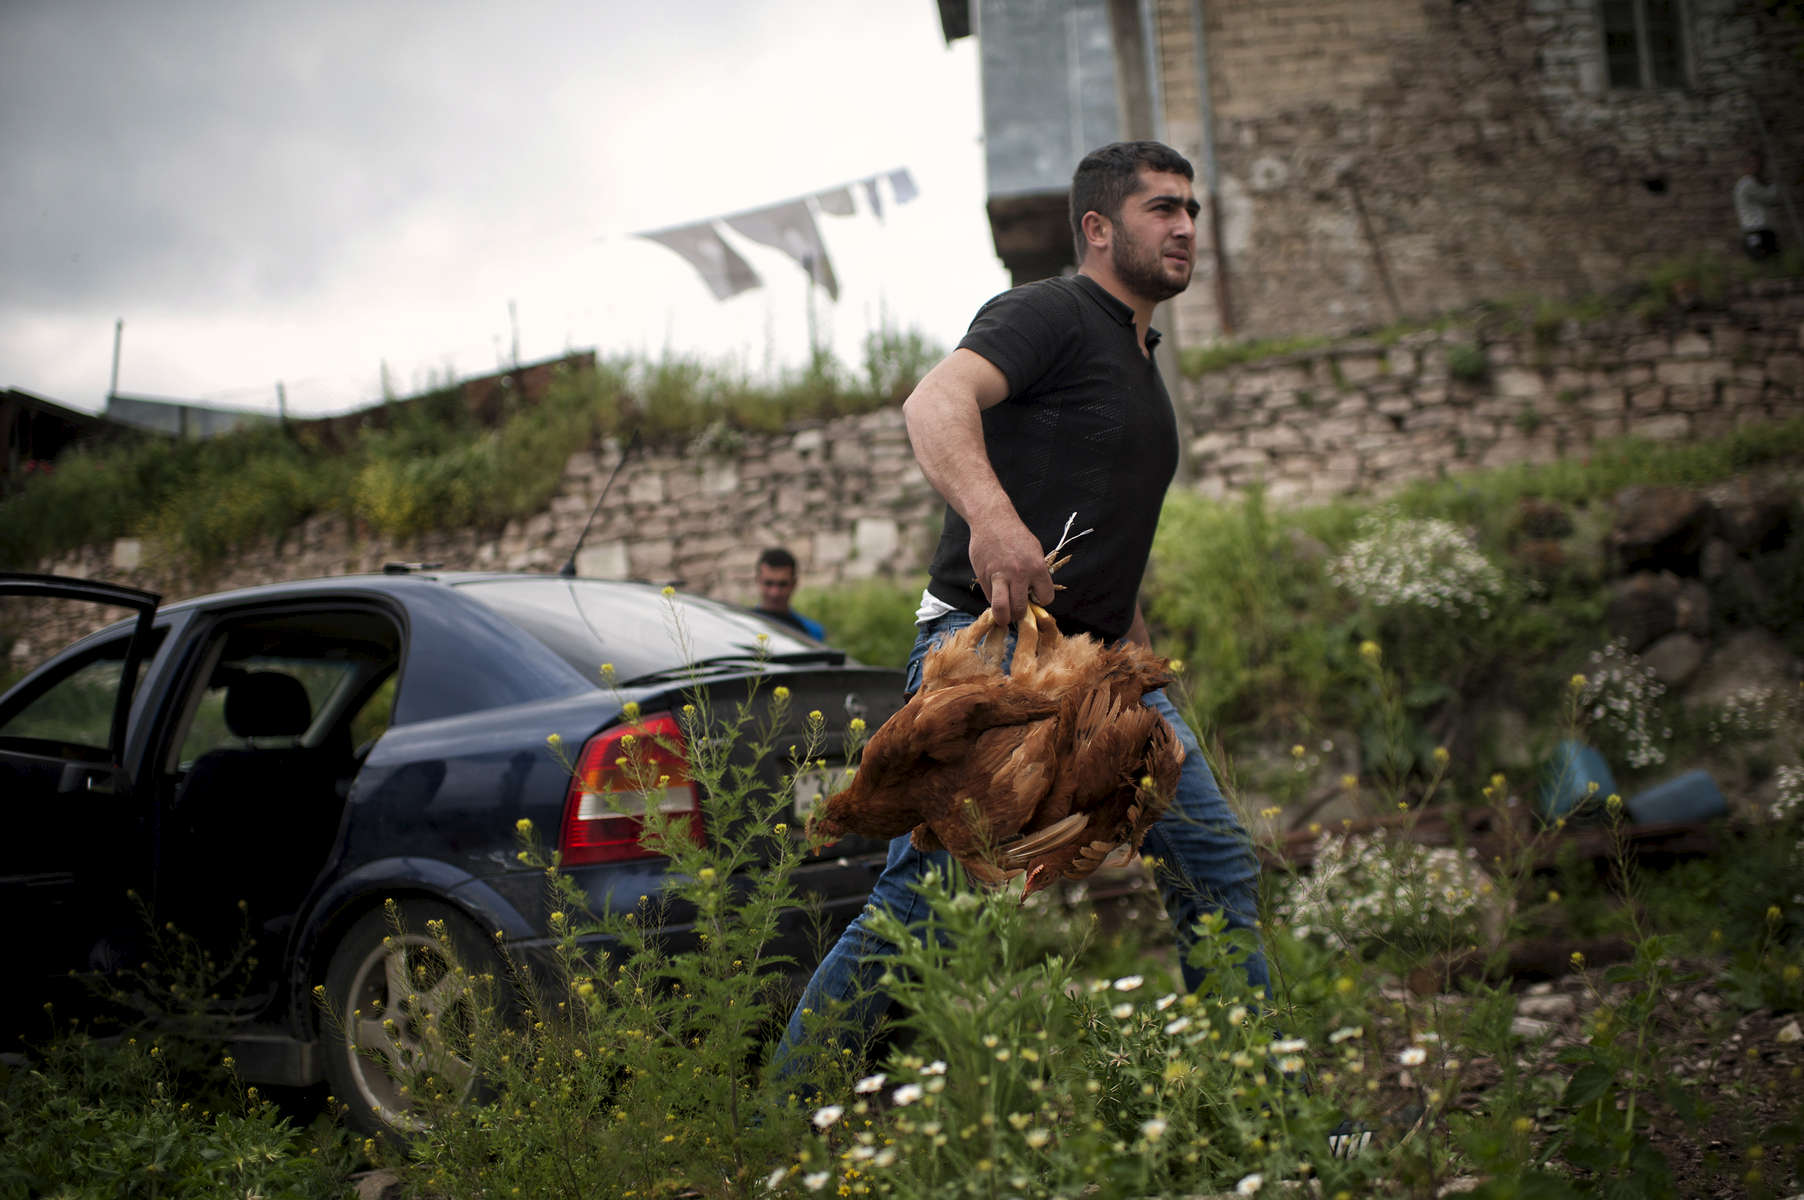 The son of a beneficiary (NAME TK) unloads a carload of chickens in Harav village. NAMES TK